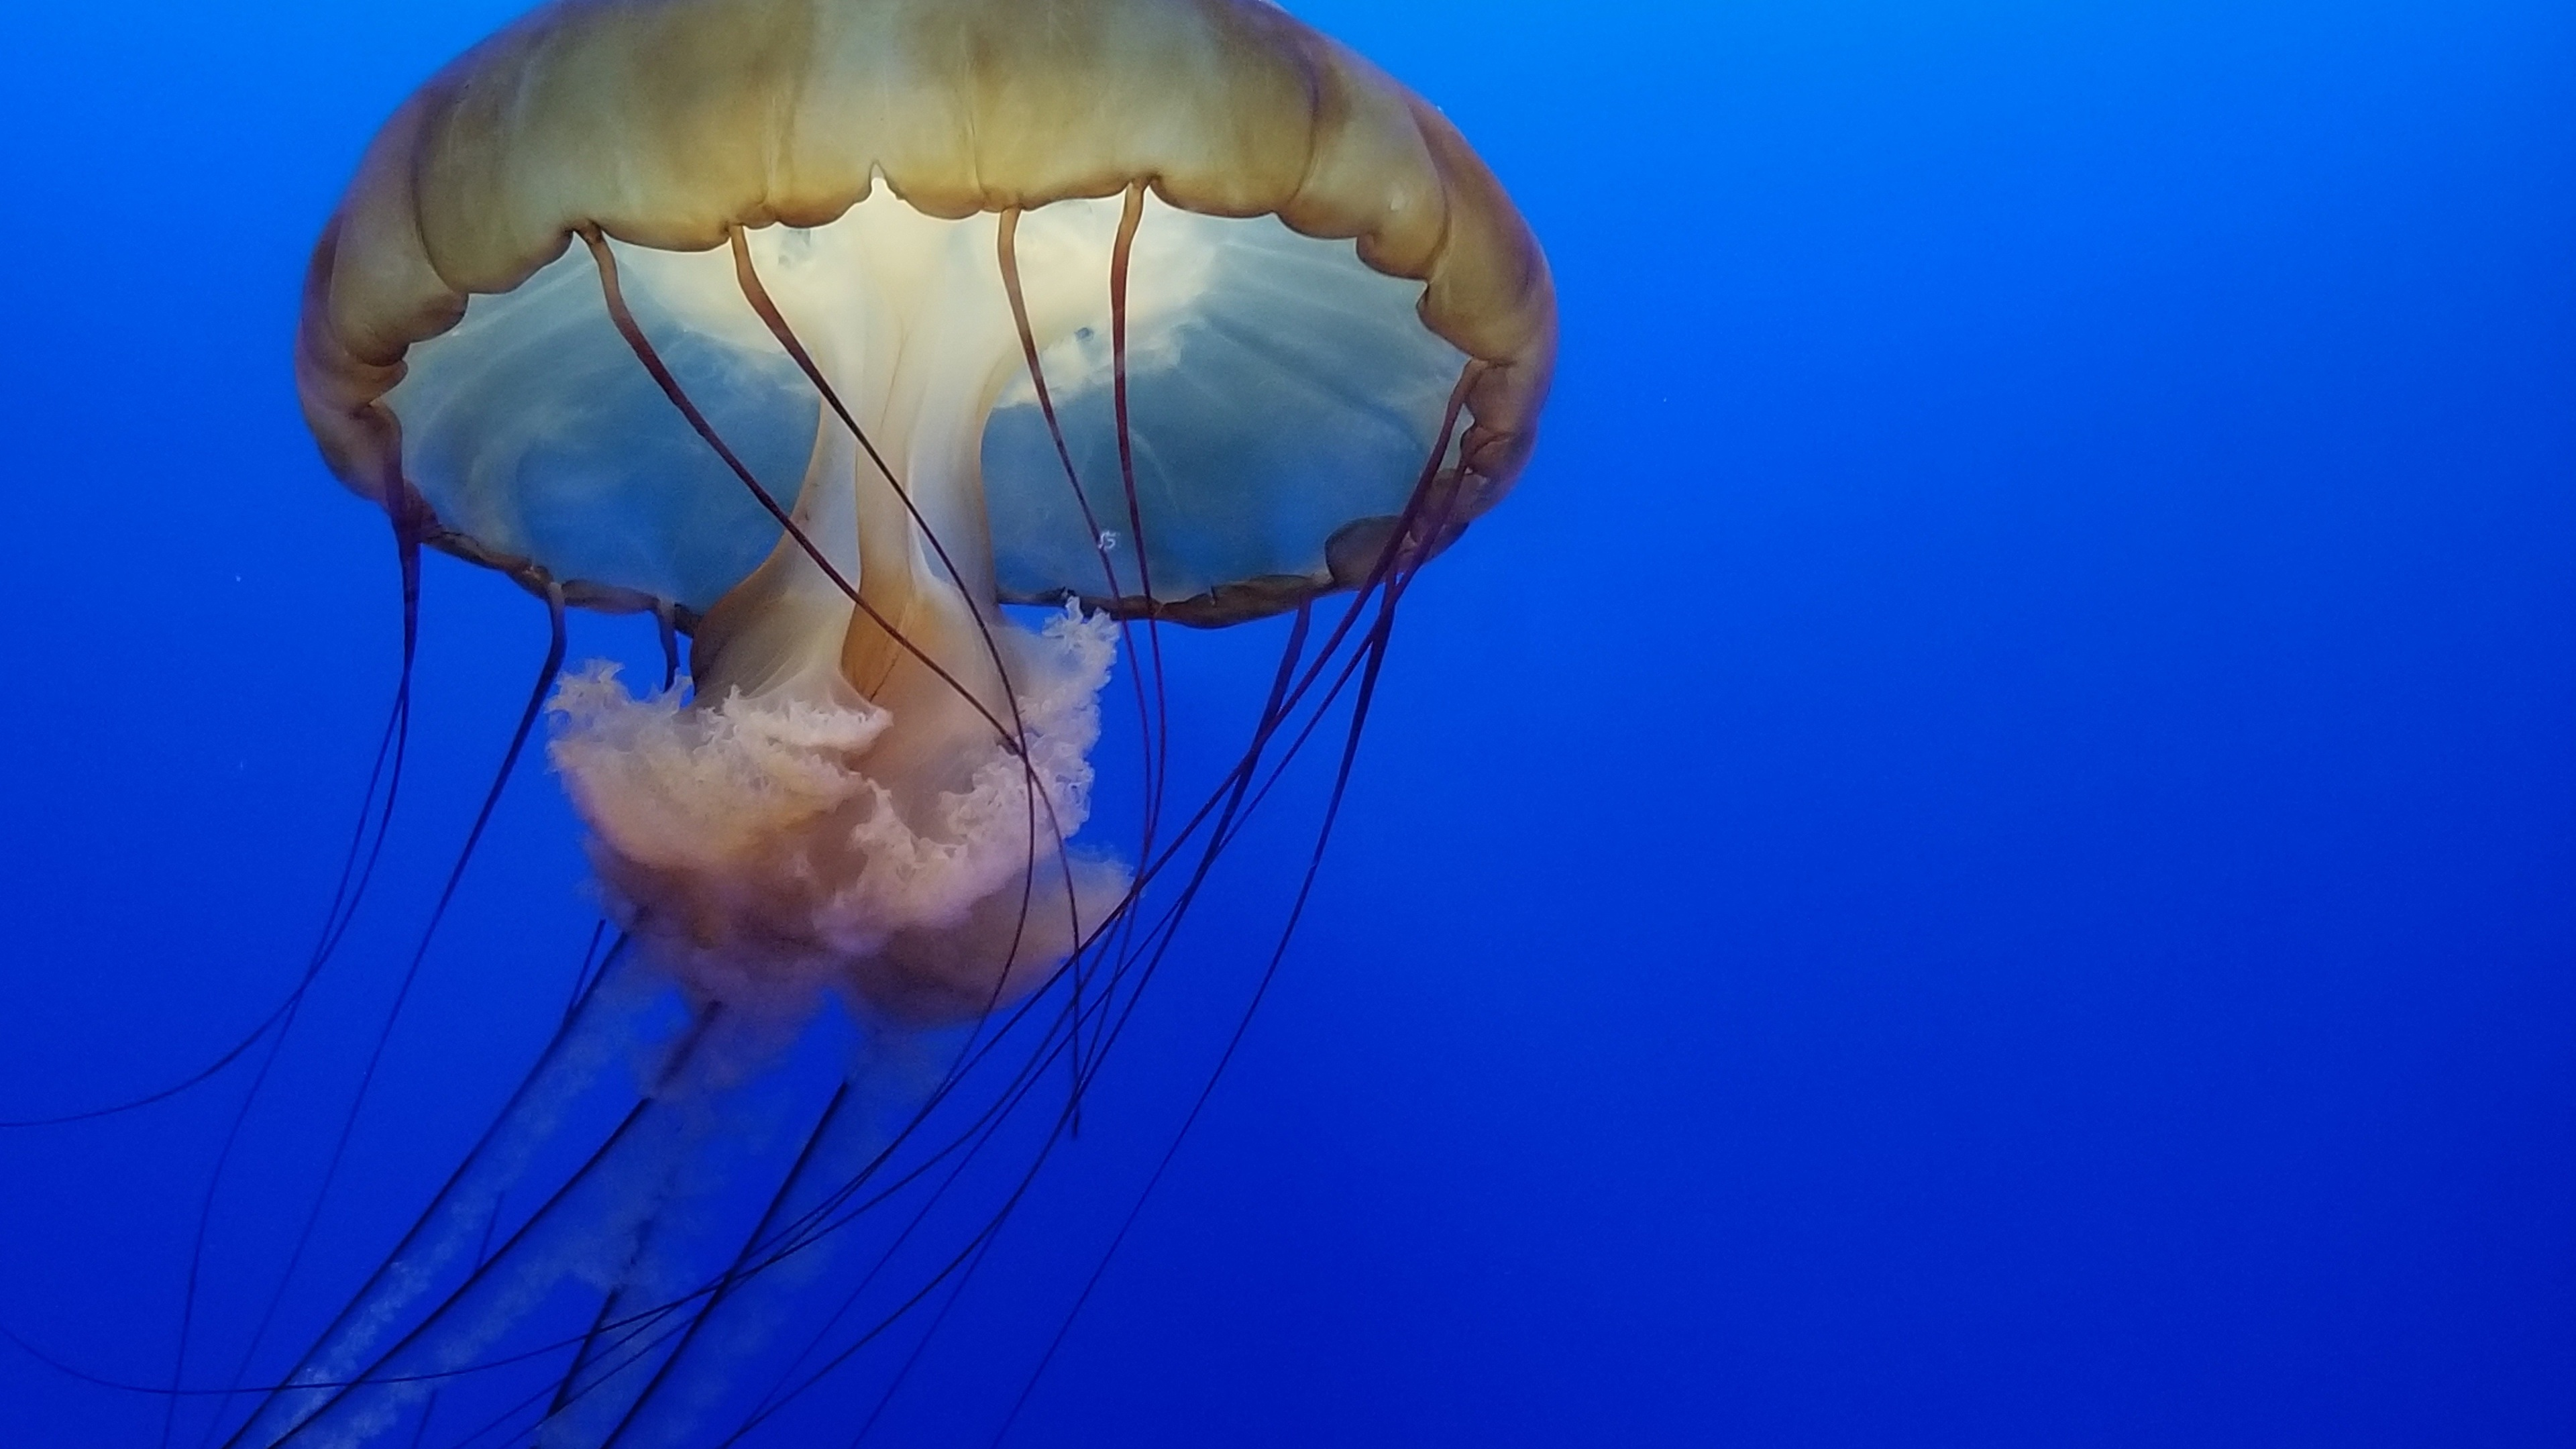 jellyfish underwater 4k 1542238870 - Jellyfish Underwater 4k - underwater wallpapers, jellyfish wallpapers, hd-wallpapers, 4k-wallpapers